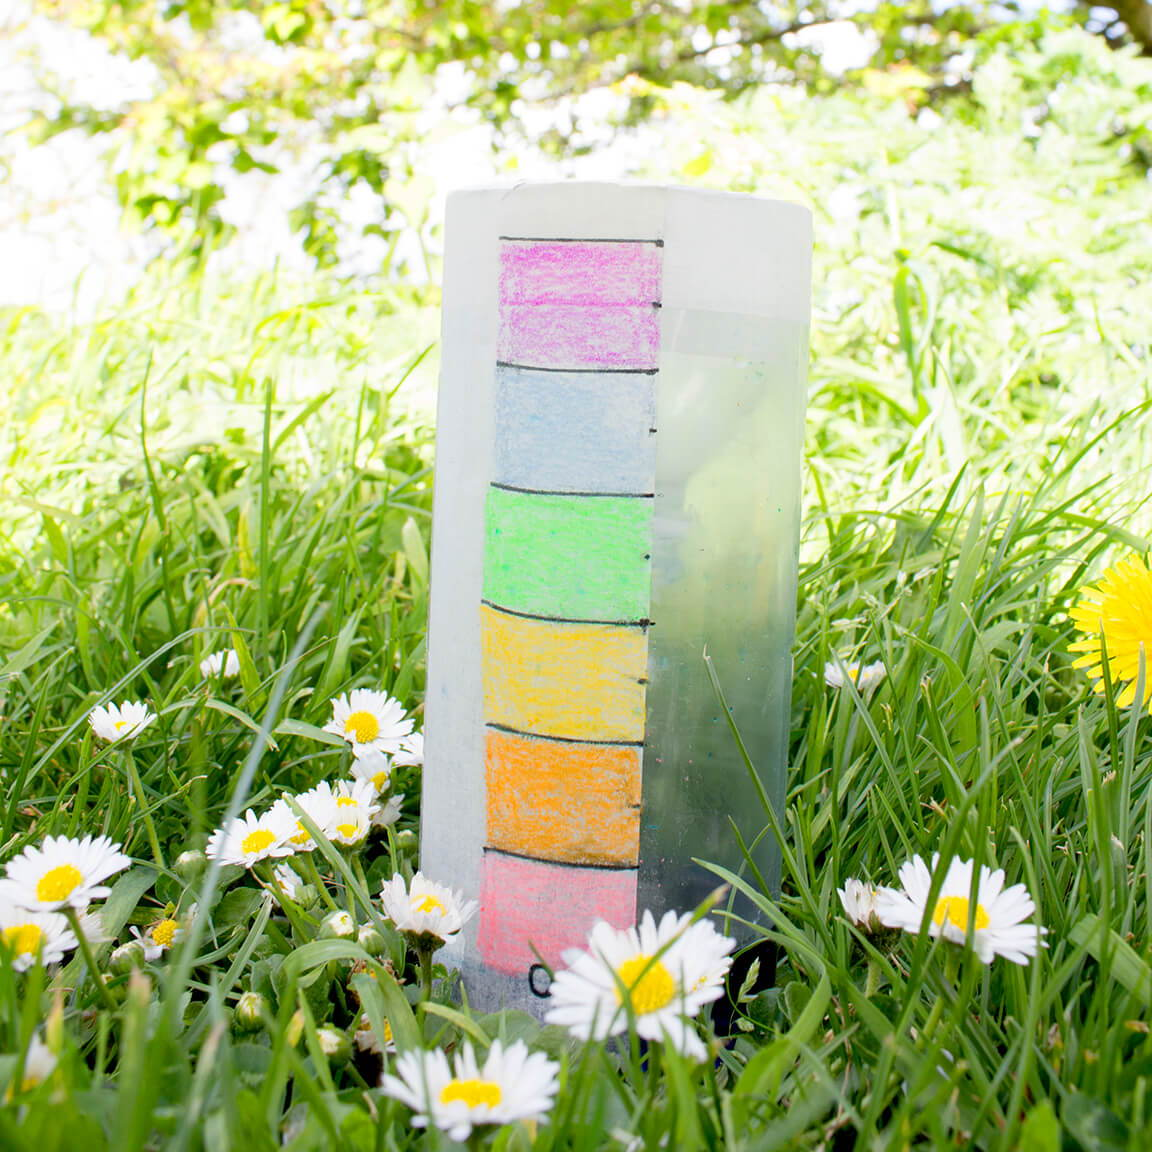 Weather experiments for kids